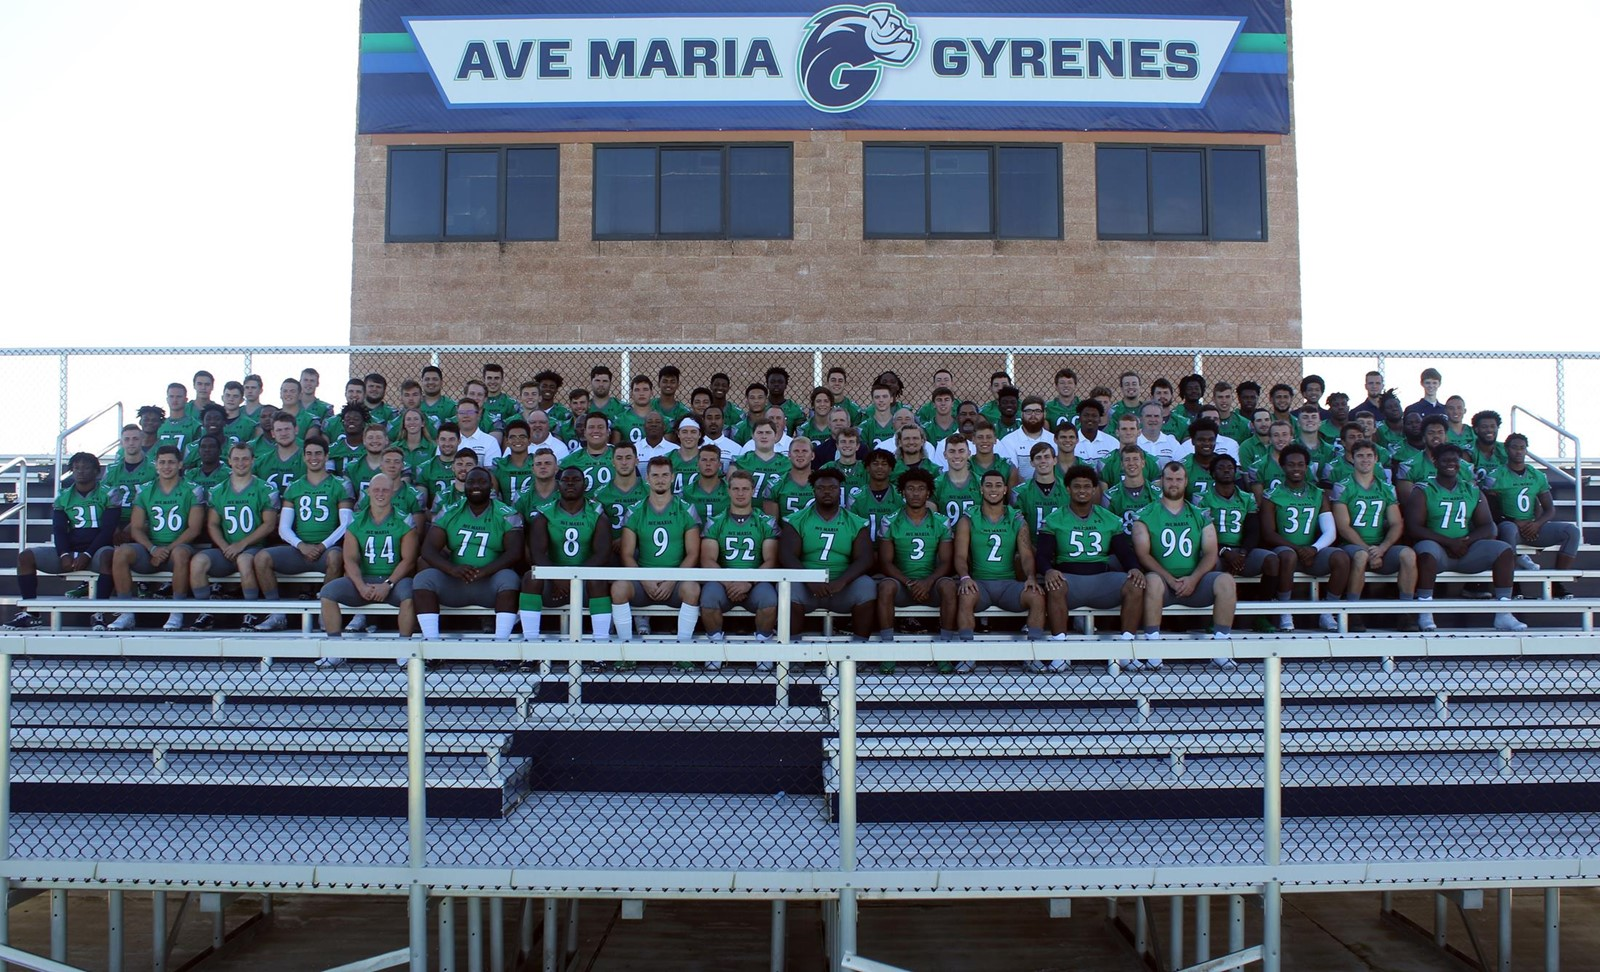 2019 Football Roster - Ave Maria University Athletics